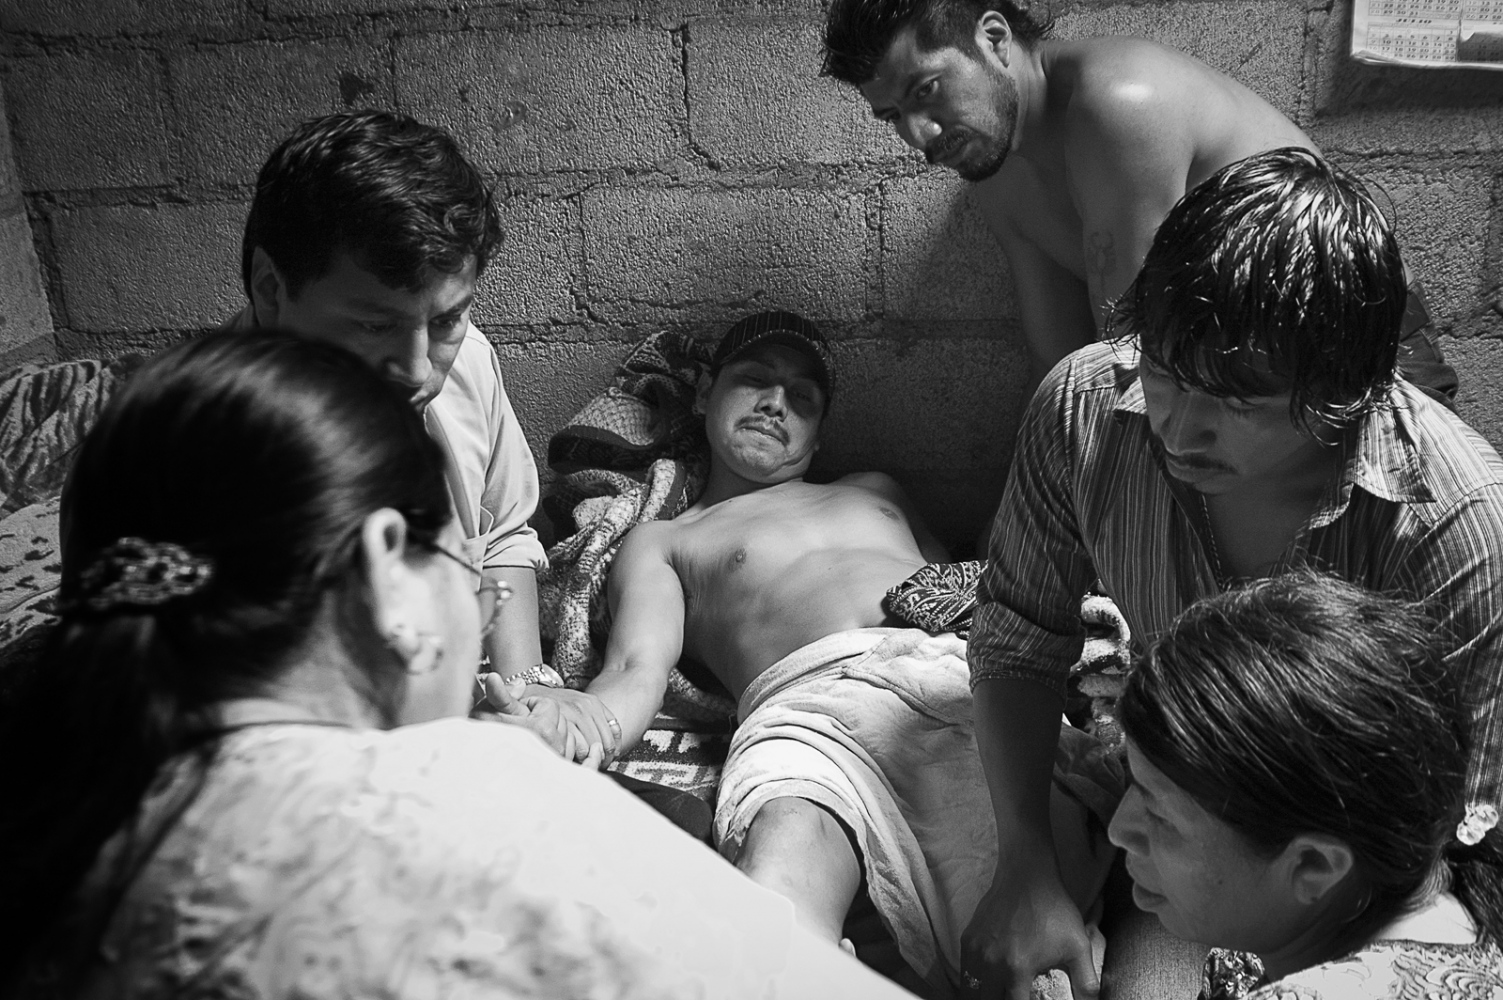 Berta Navichoc healing Pedro Mendoza, who is surrounded by his family